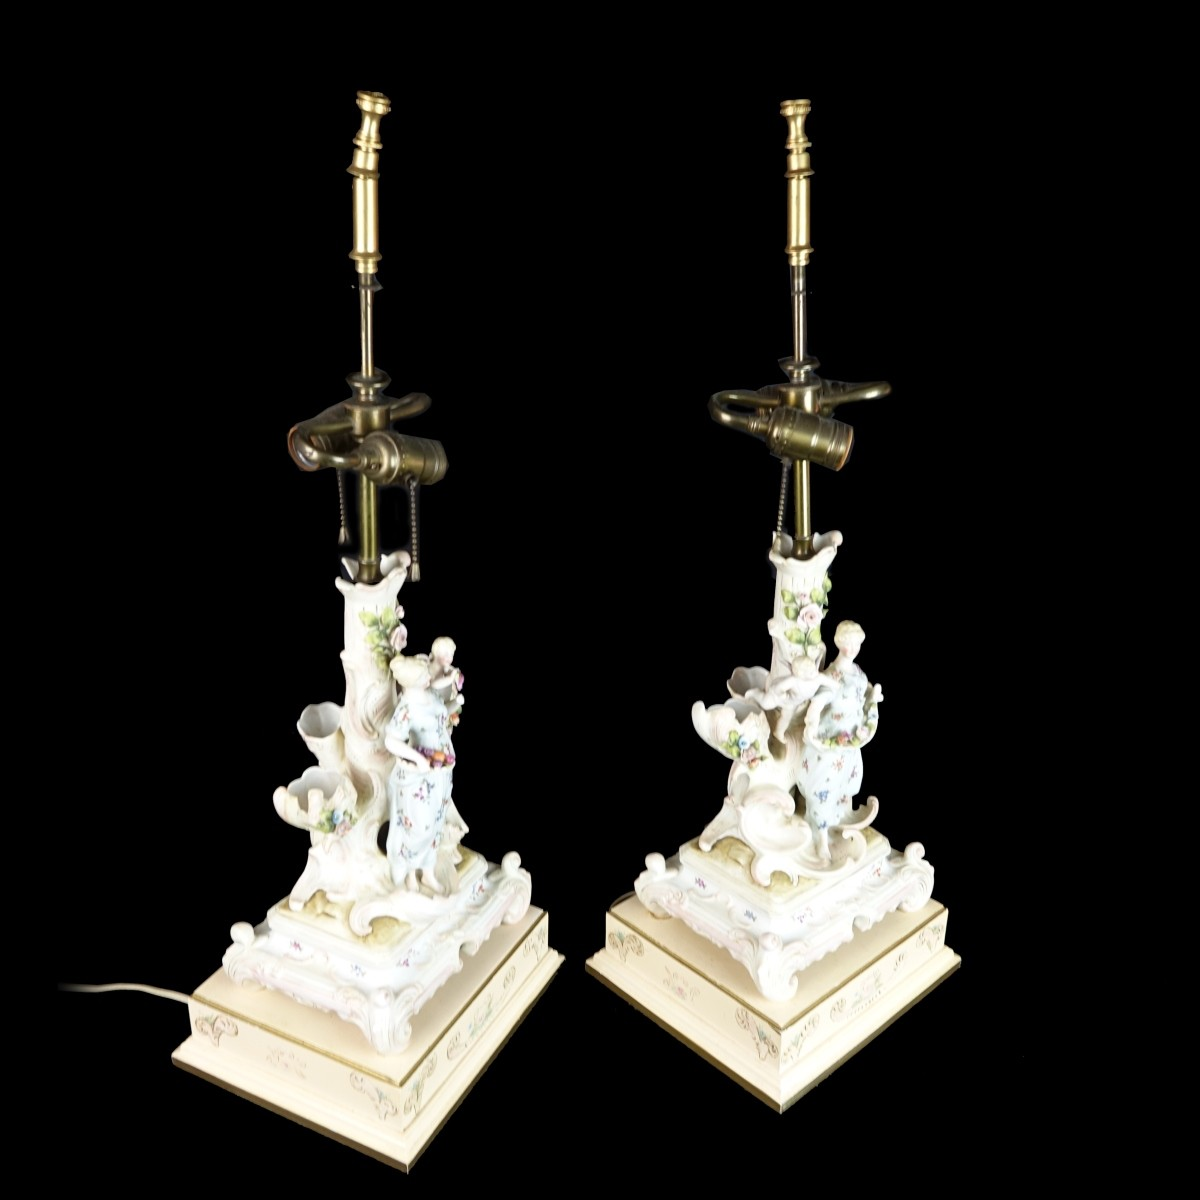 Pair of German Candlesticks Mounted as lamps